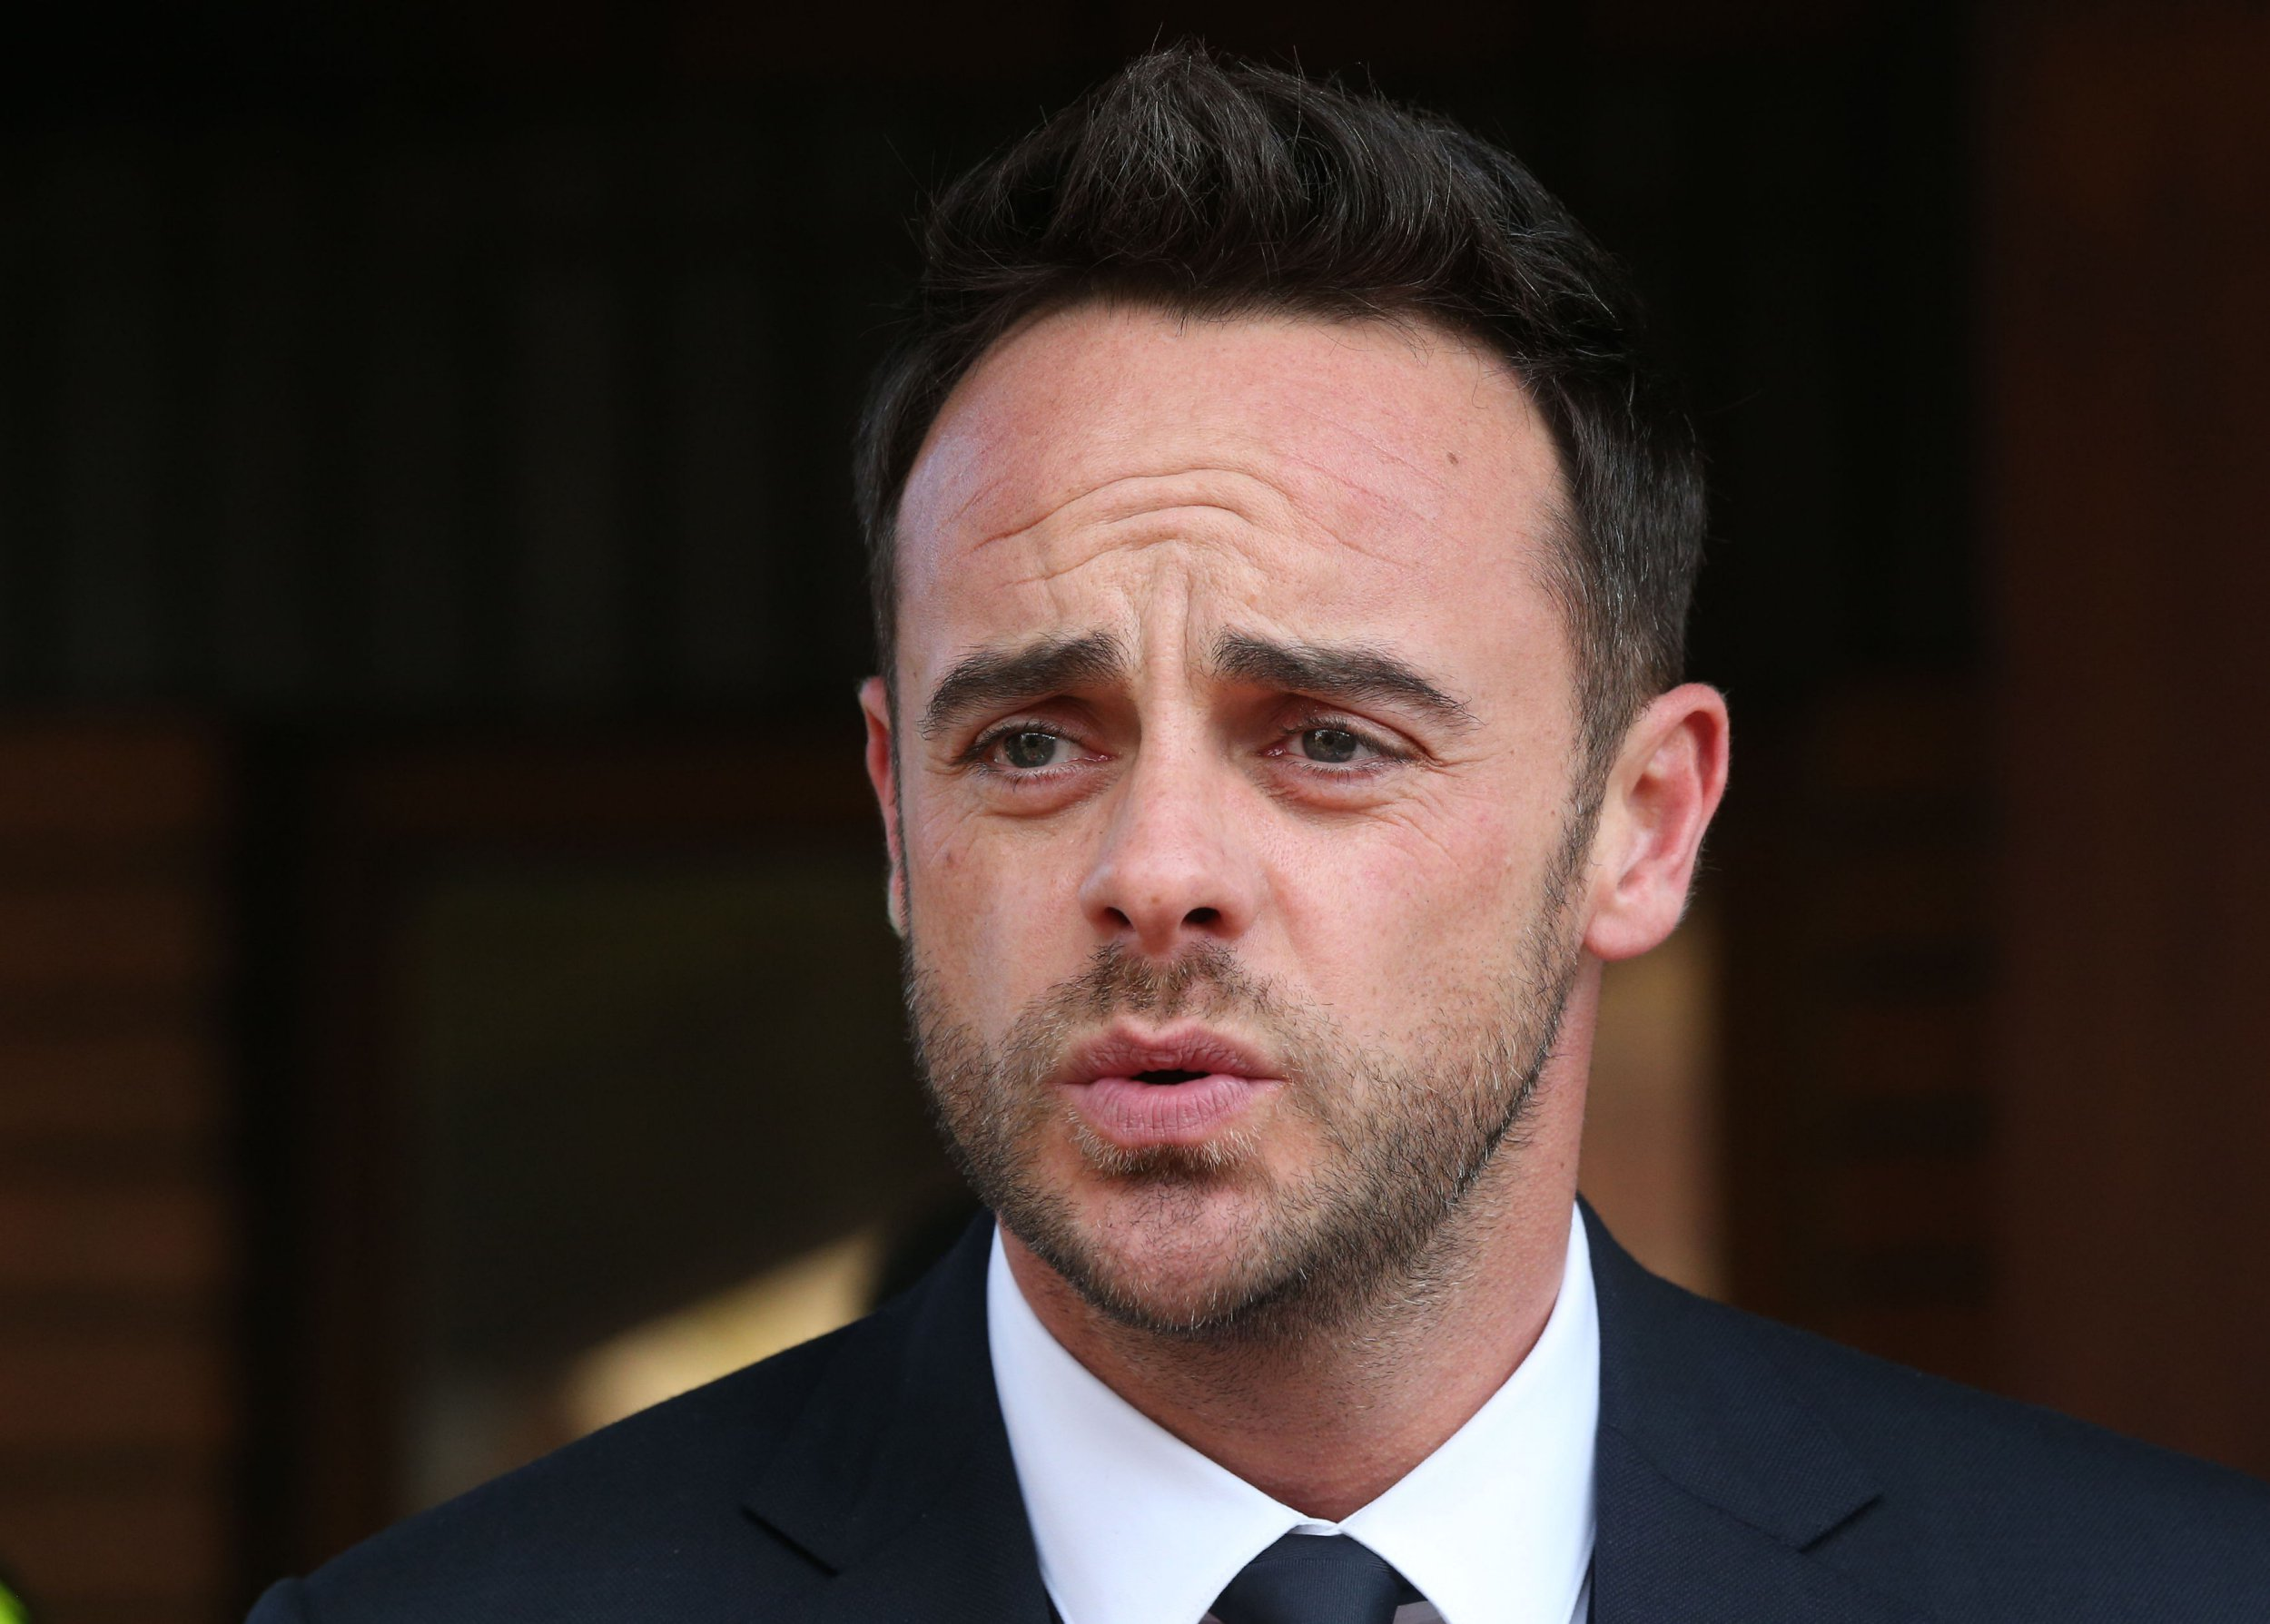 Ant McPartlin 'buys new London home to start afresh' following divorce from Lisa Armstrong